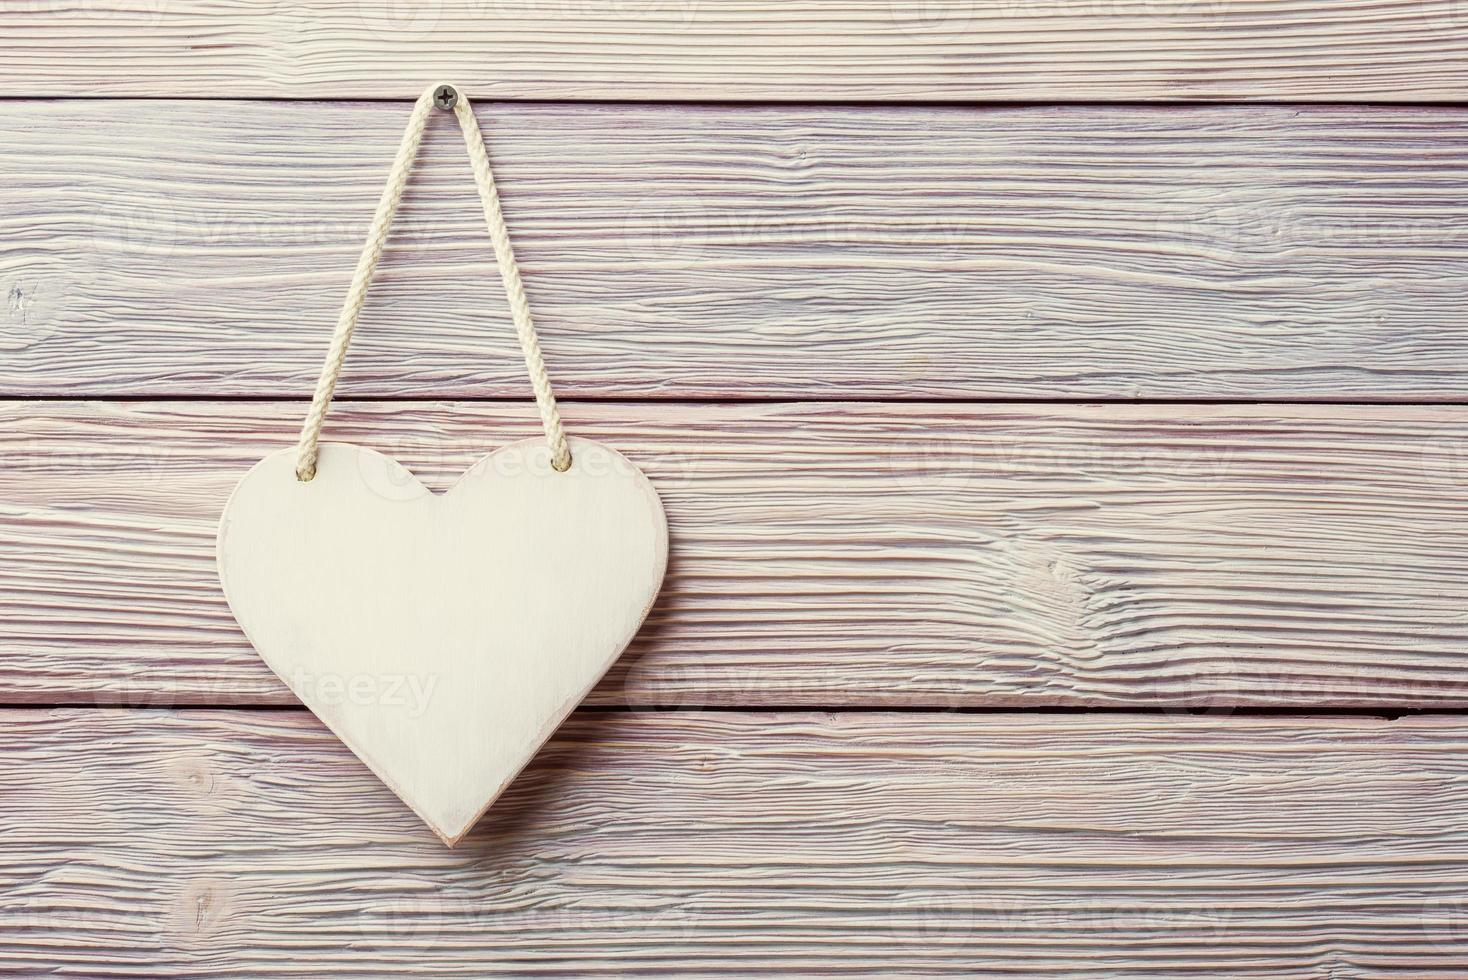 White heart hanging over light wooden vintage background photo